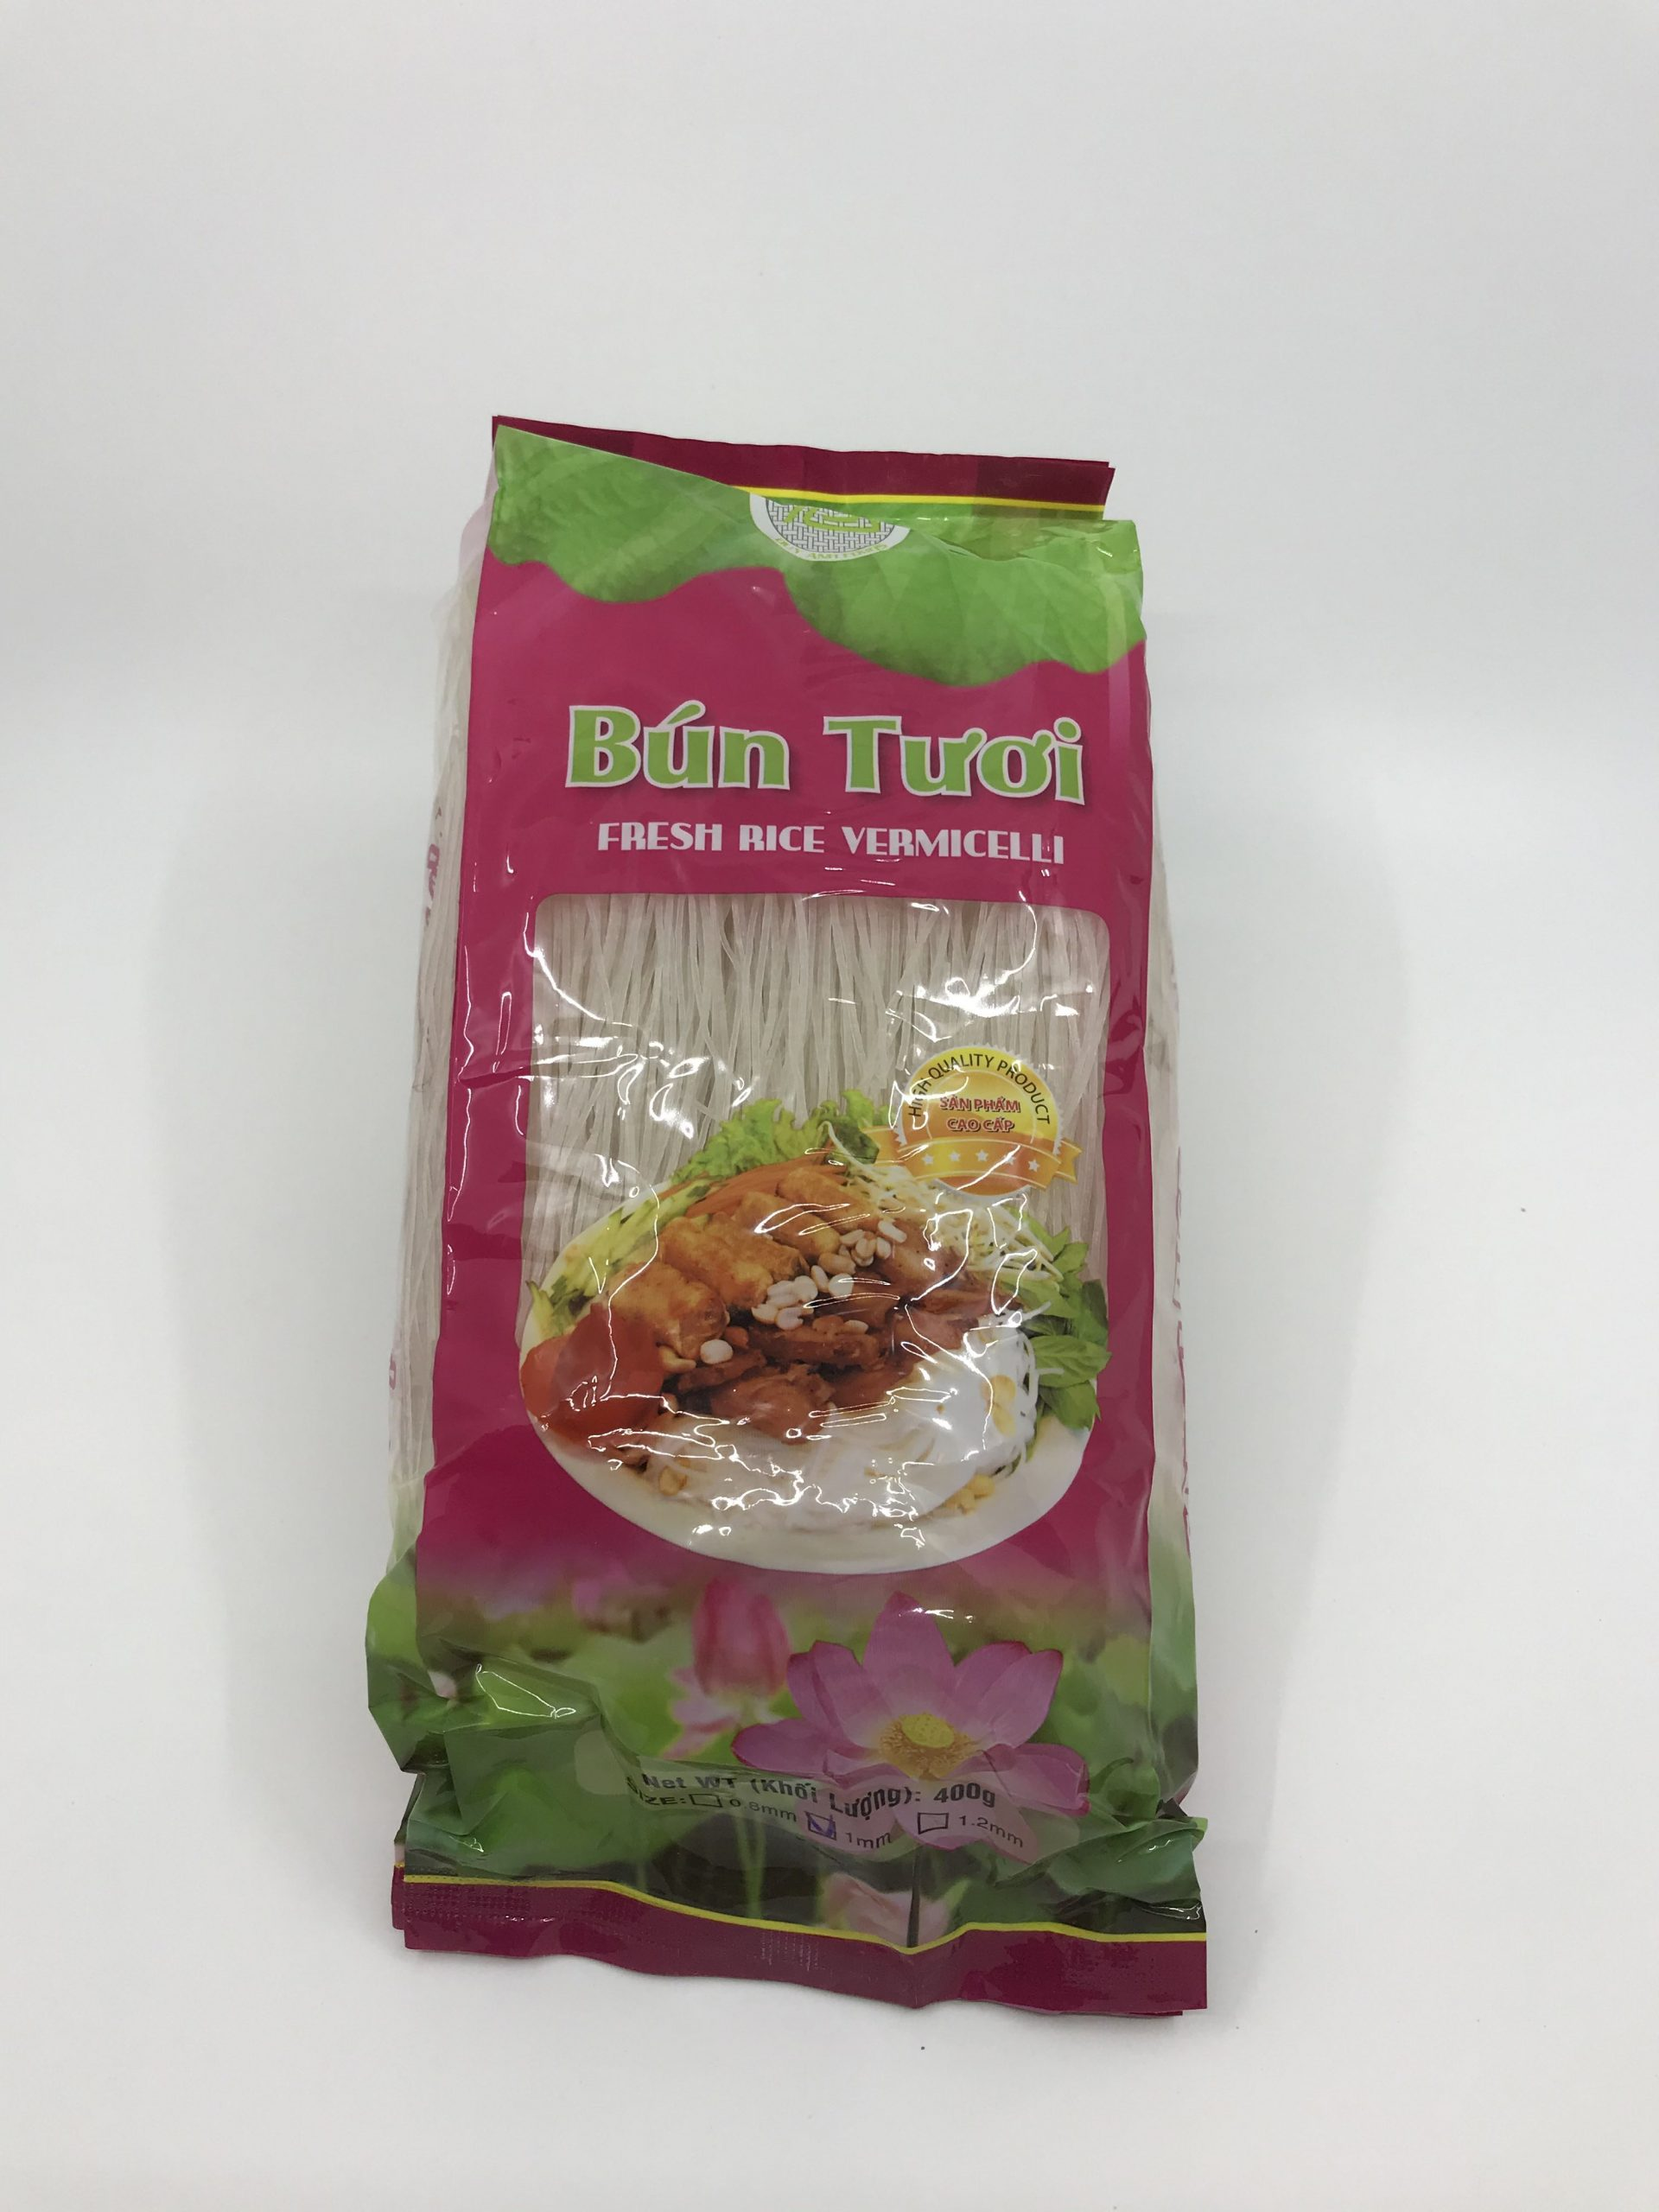 Rice noodle (bun tuoi) Duy Anh brand